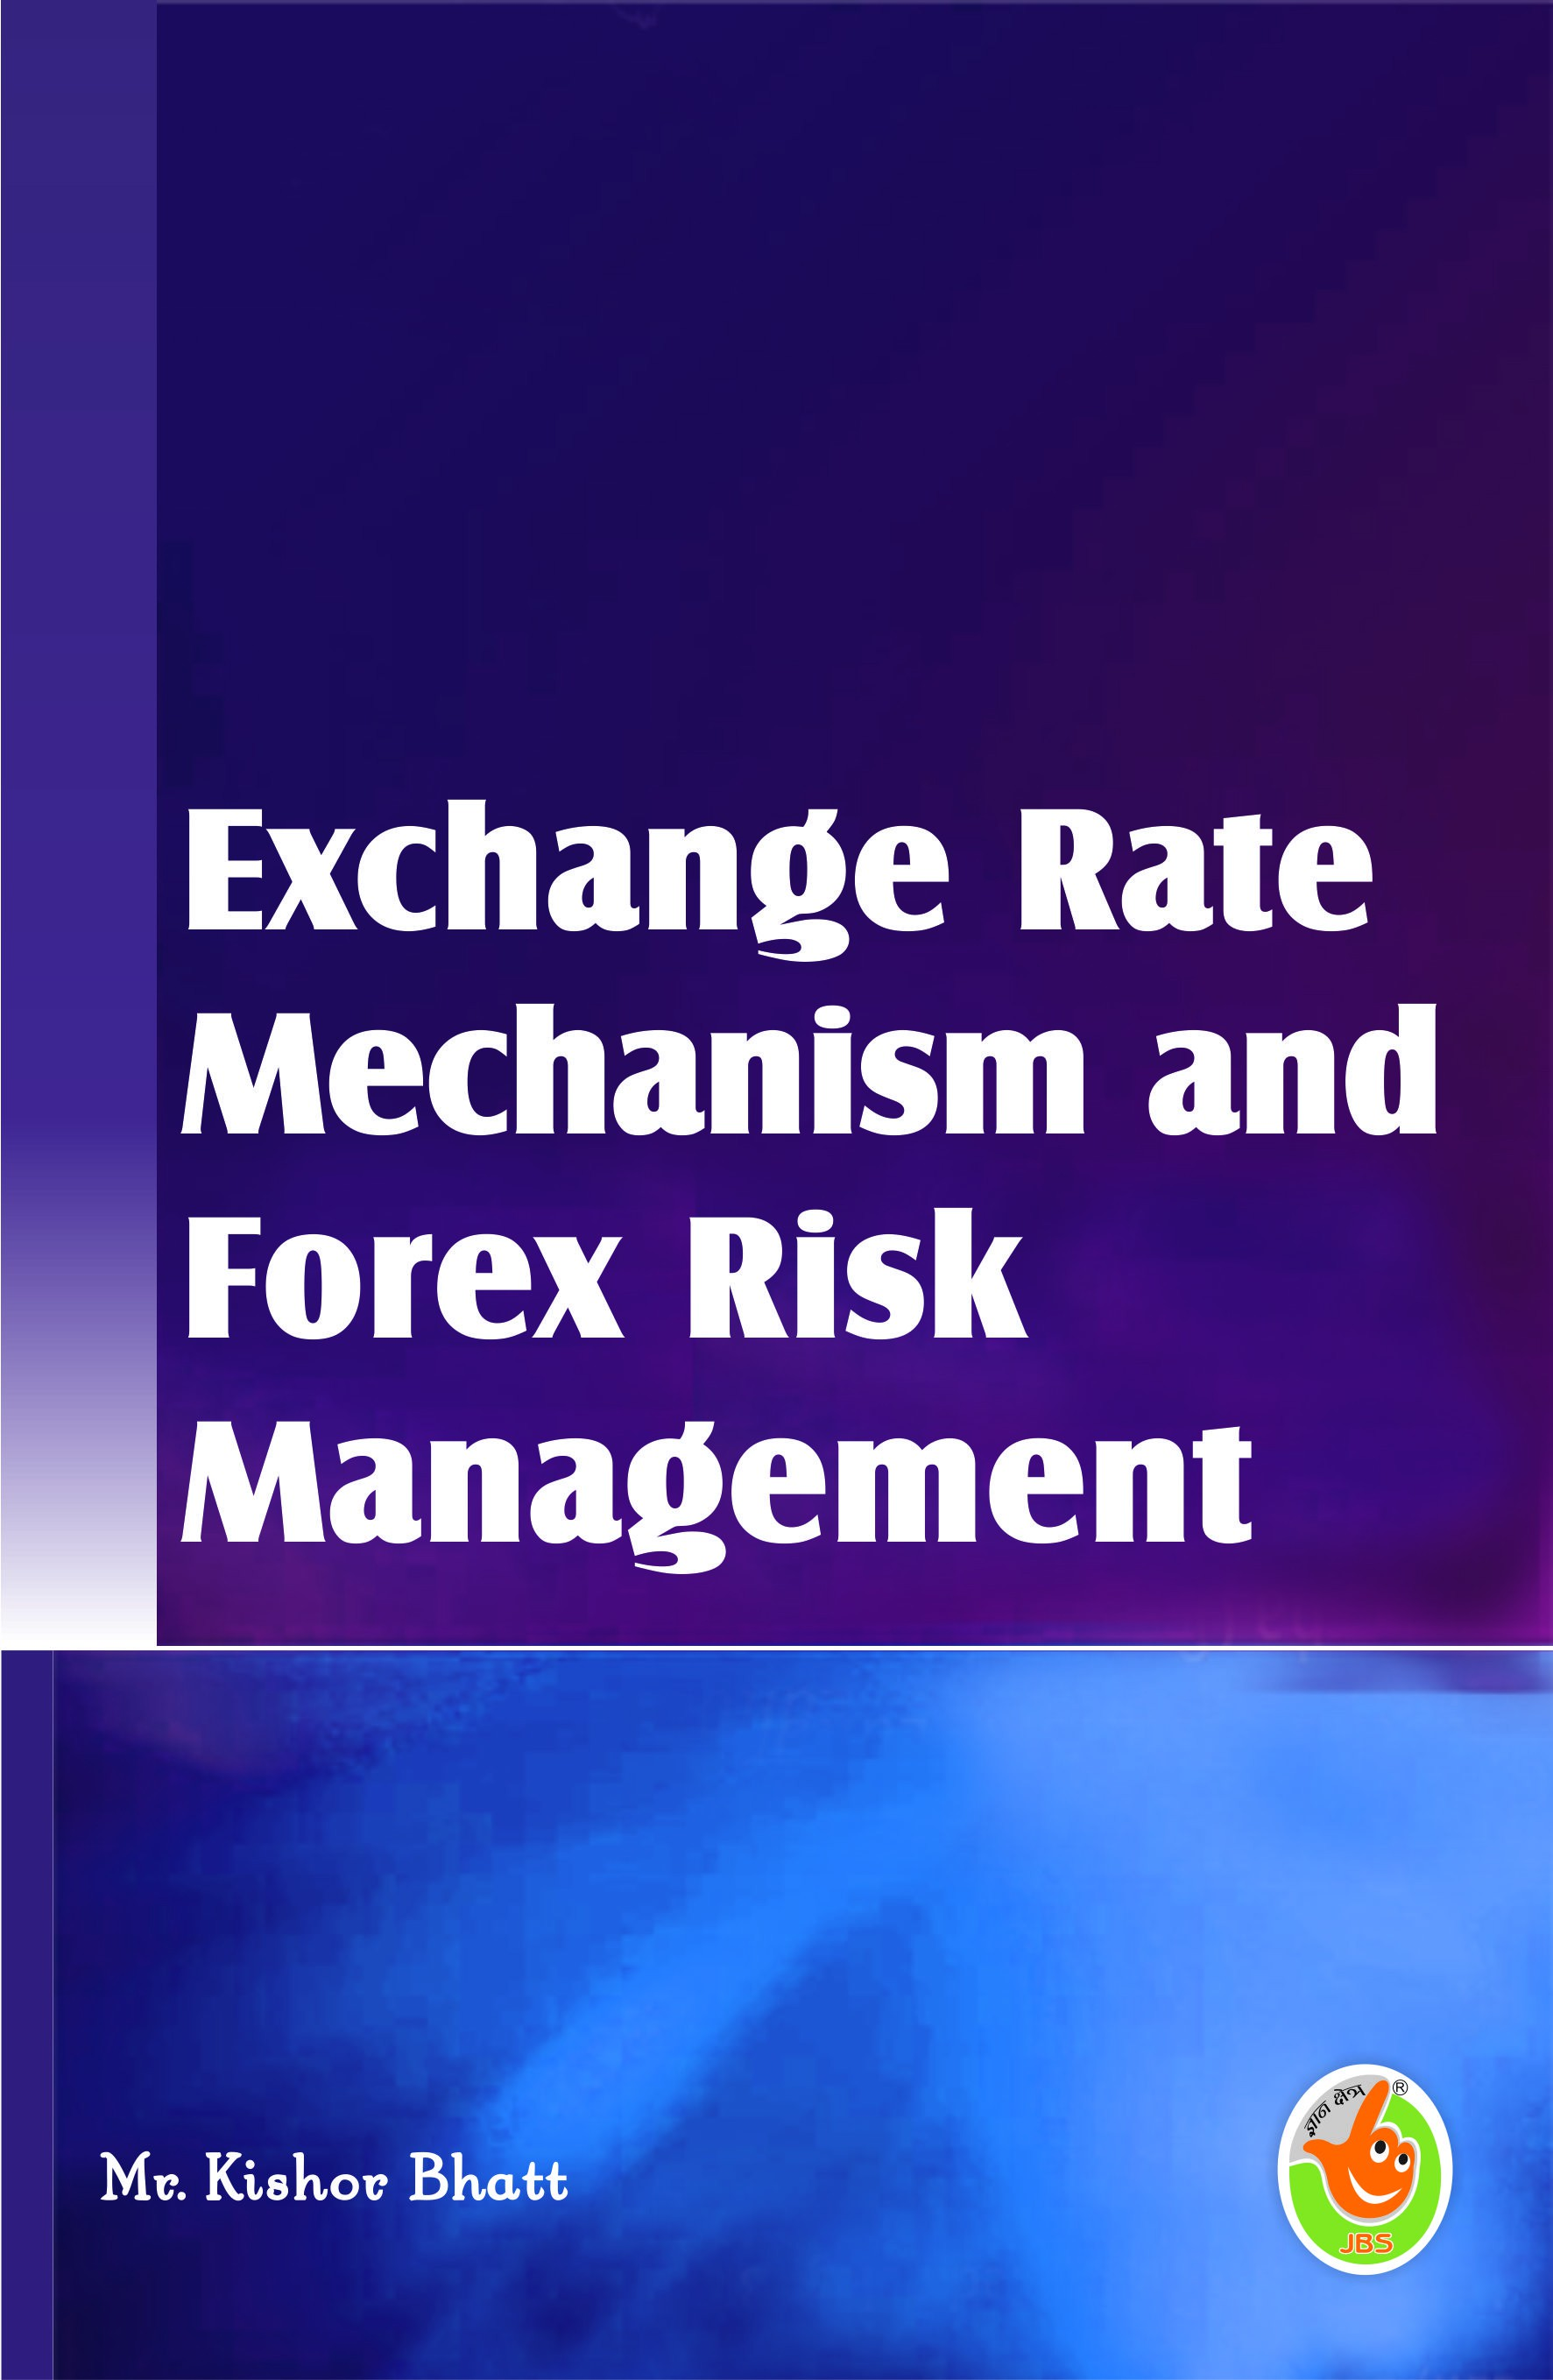 Exchange Rate Management and Risk Management